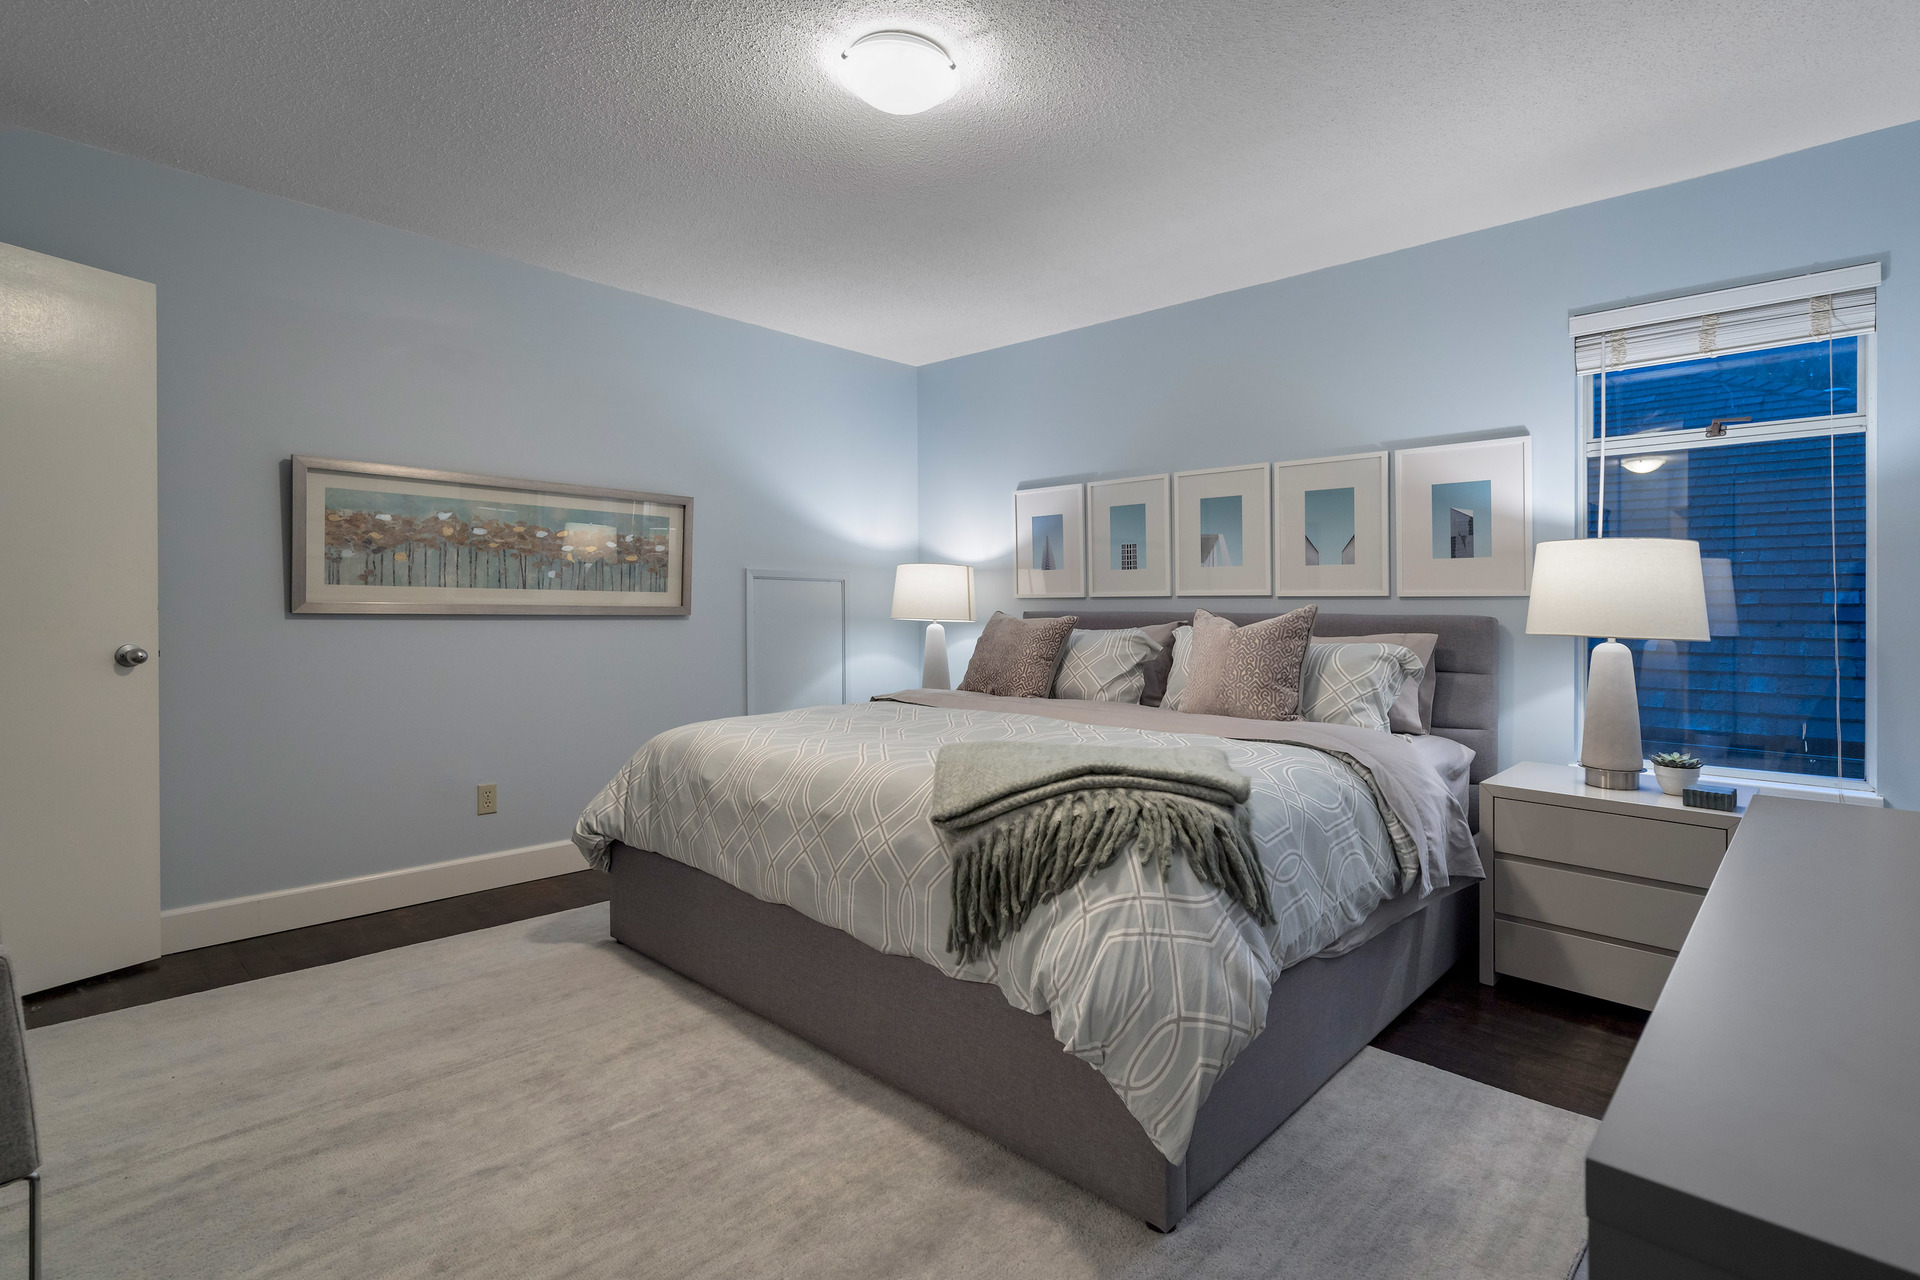 47803f1 at 4753 Woodrow Crescent, Lynn Valley, North Vancouver